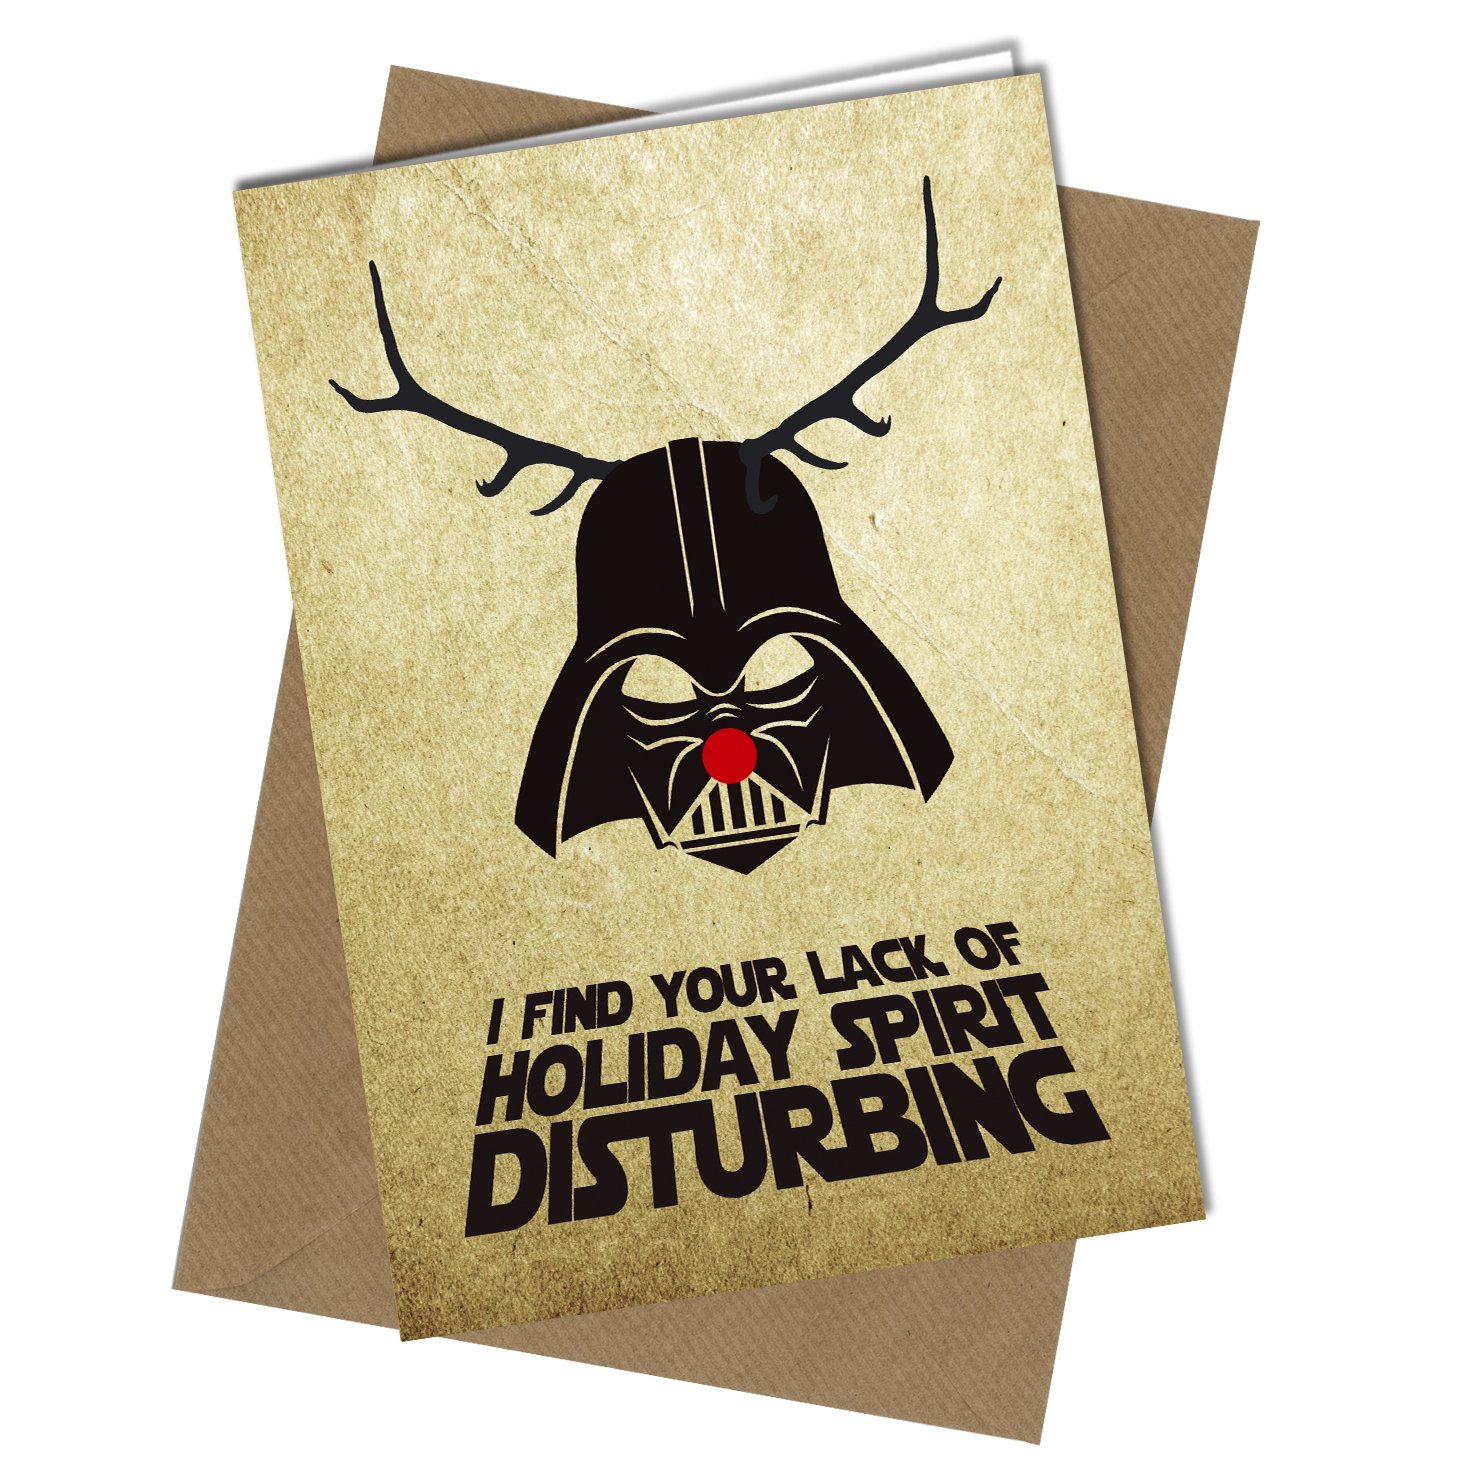 #410 CHRISTMAS CARD Rude Greeting Card funny humour joke Star Wars Xmas Card A4 folded to A5 (210 x 148mm when folded) By: Close to the Bone Special Days